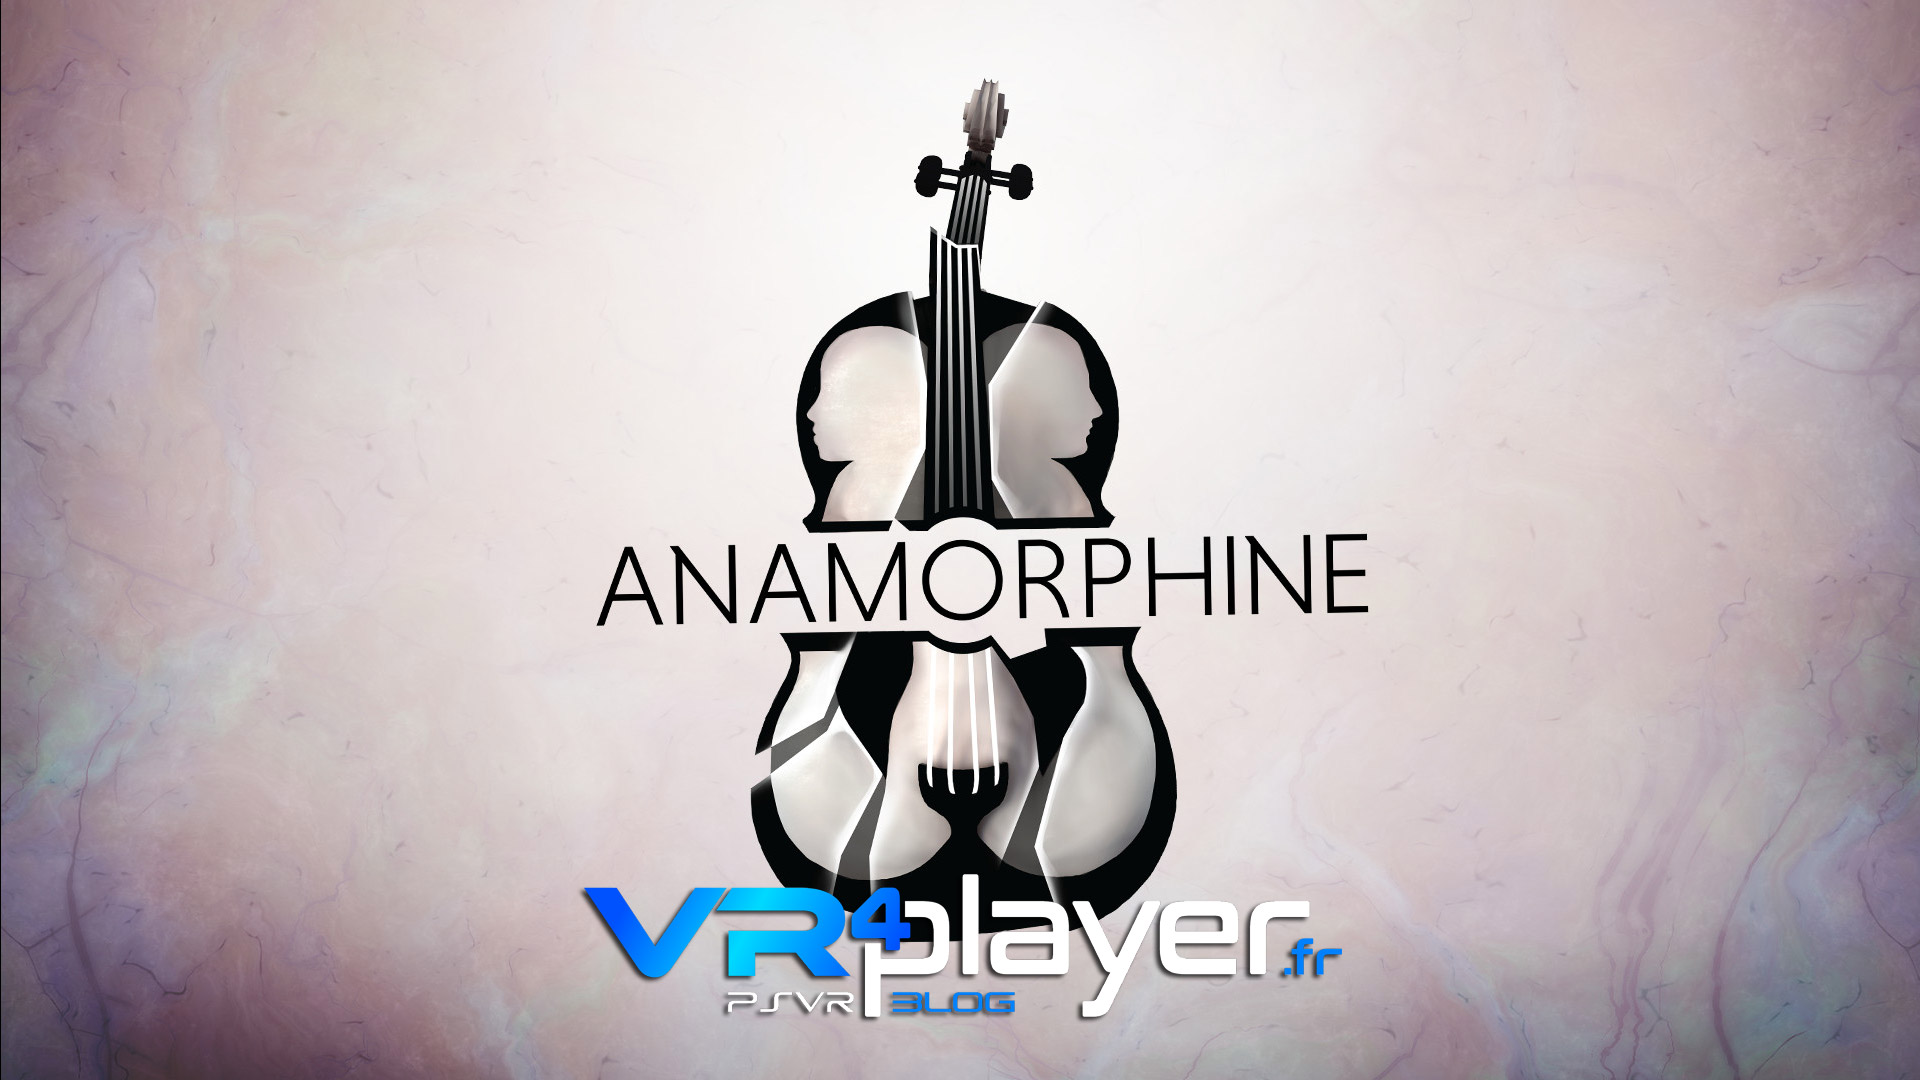 Anamorphine le 31 juillet aux USA vr4player.fr